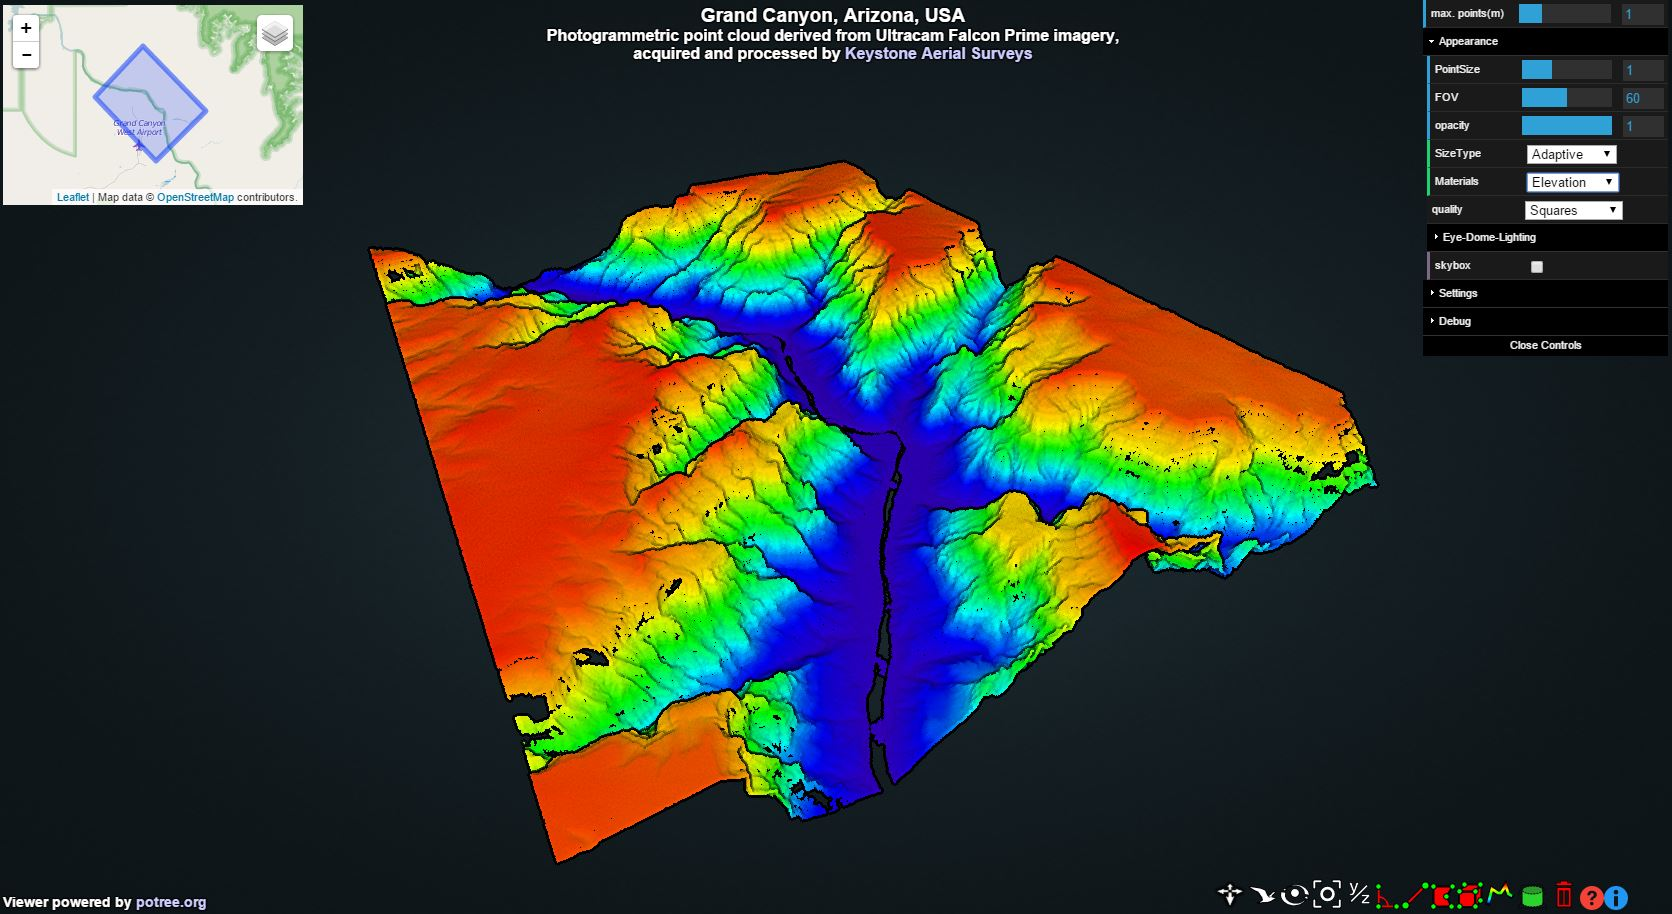 3D Visualization of the Grand Canyon with Potree | wesmapping com/blog